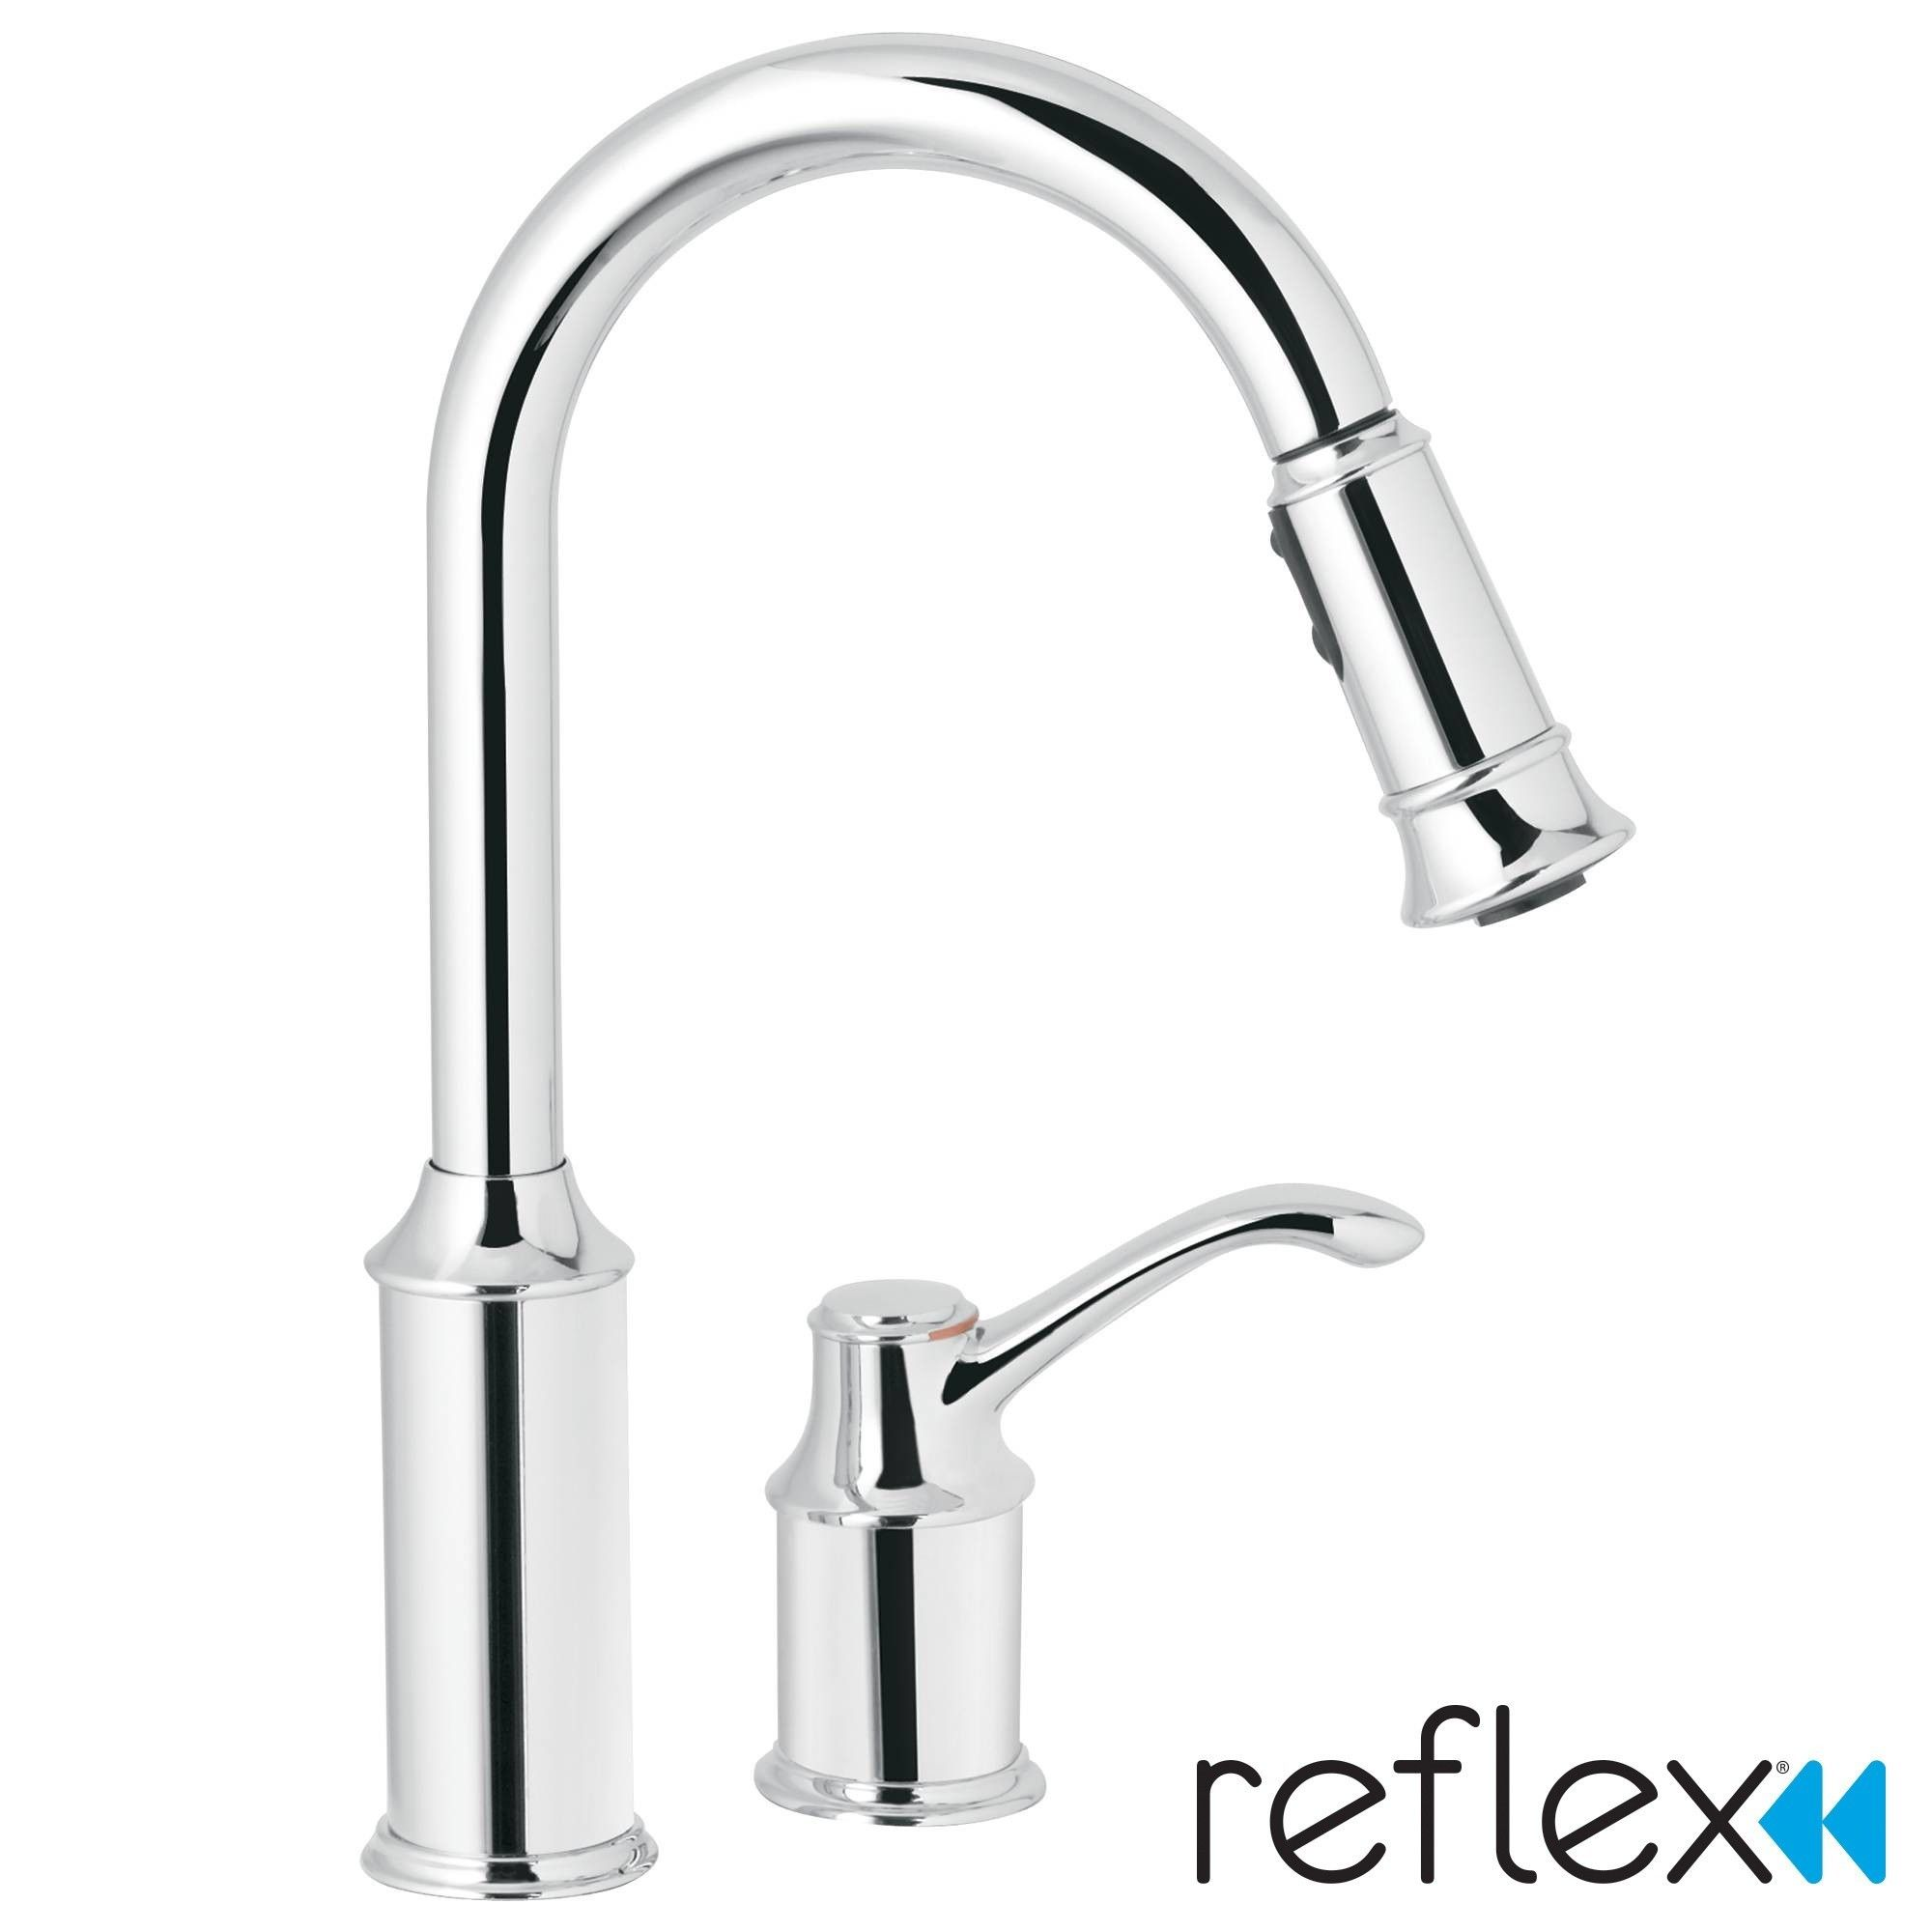 featured faucet phone number kitchen delta faucets and accessories fixtures accesory